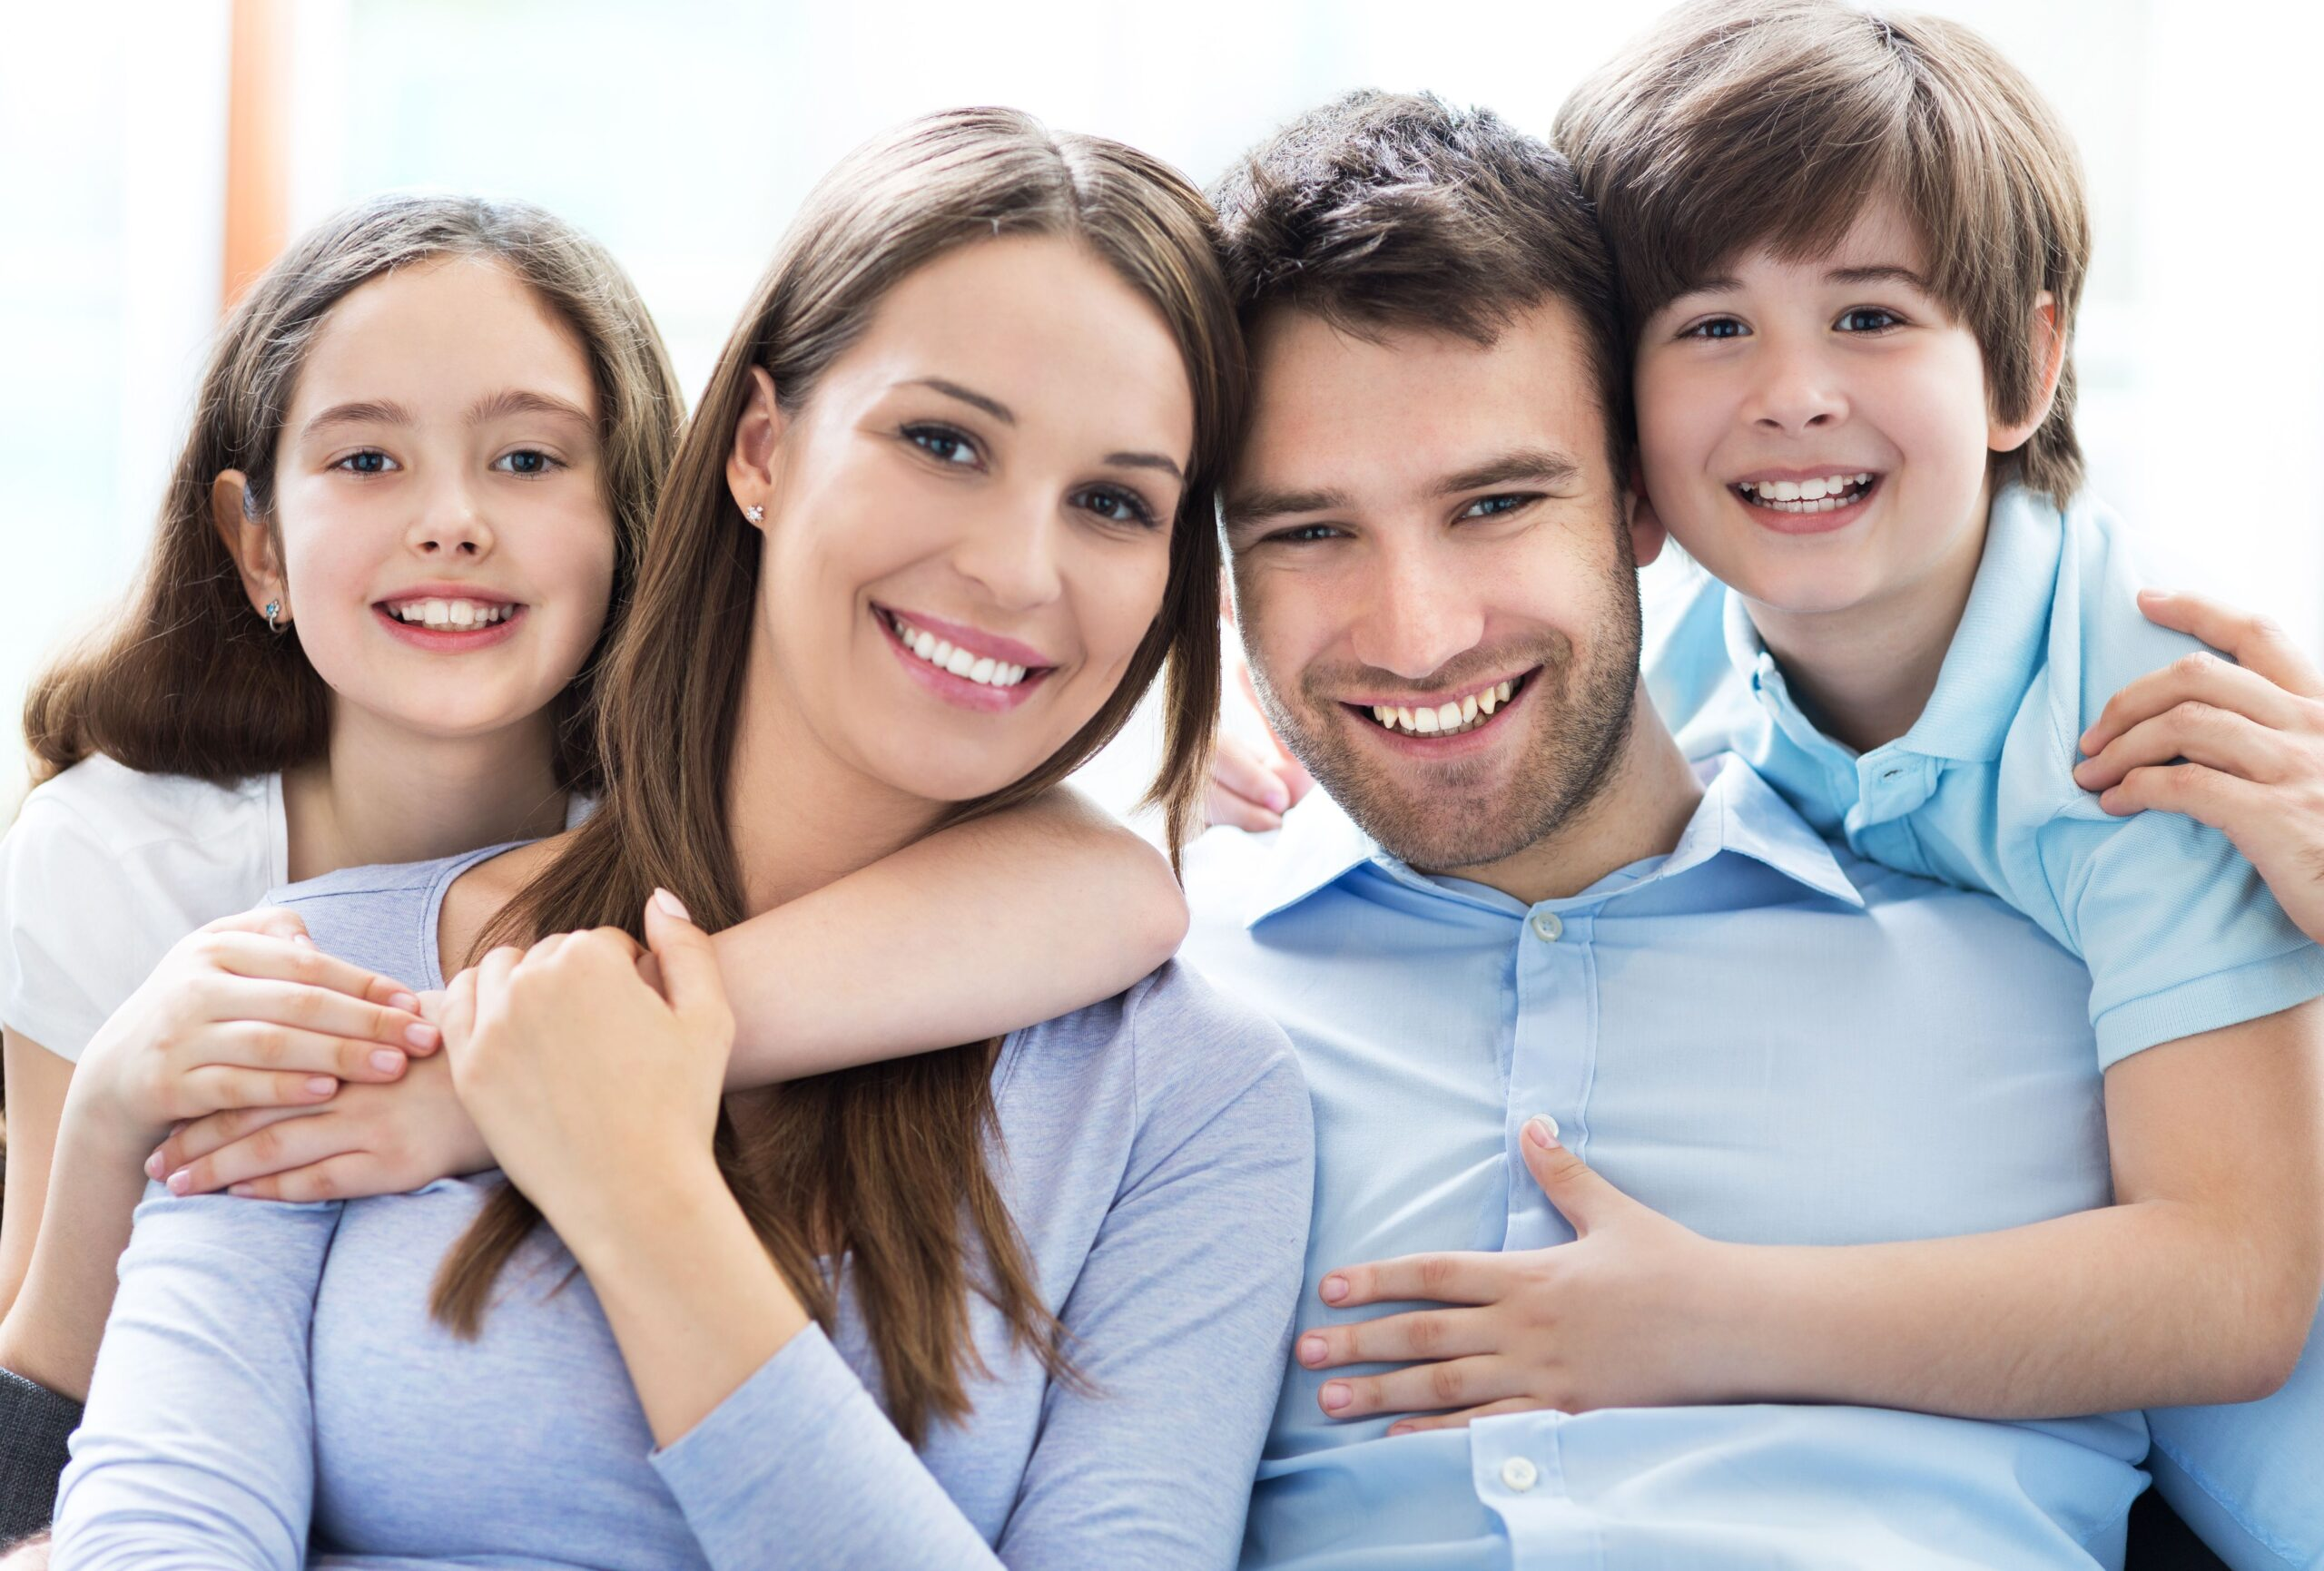 Dentist Near Me | 3 Simple Ways to Reduce Tooth Decay